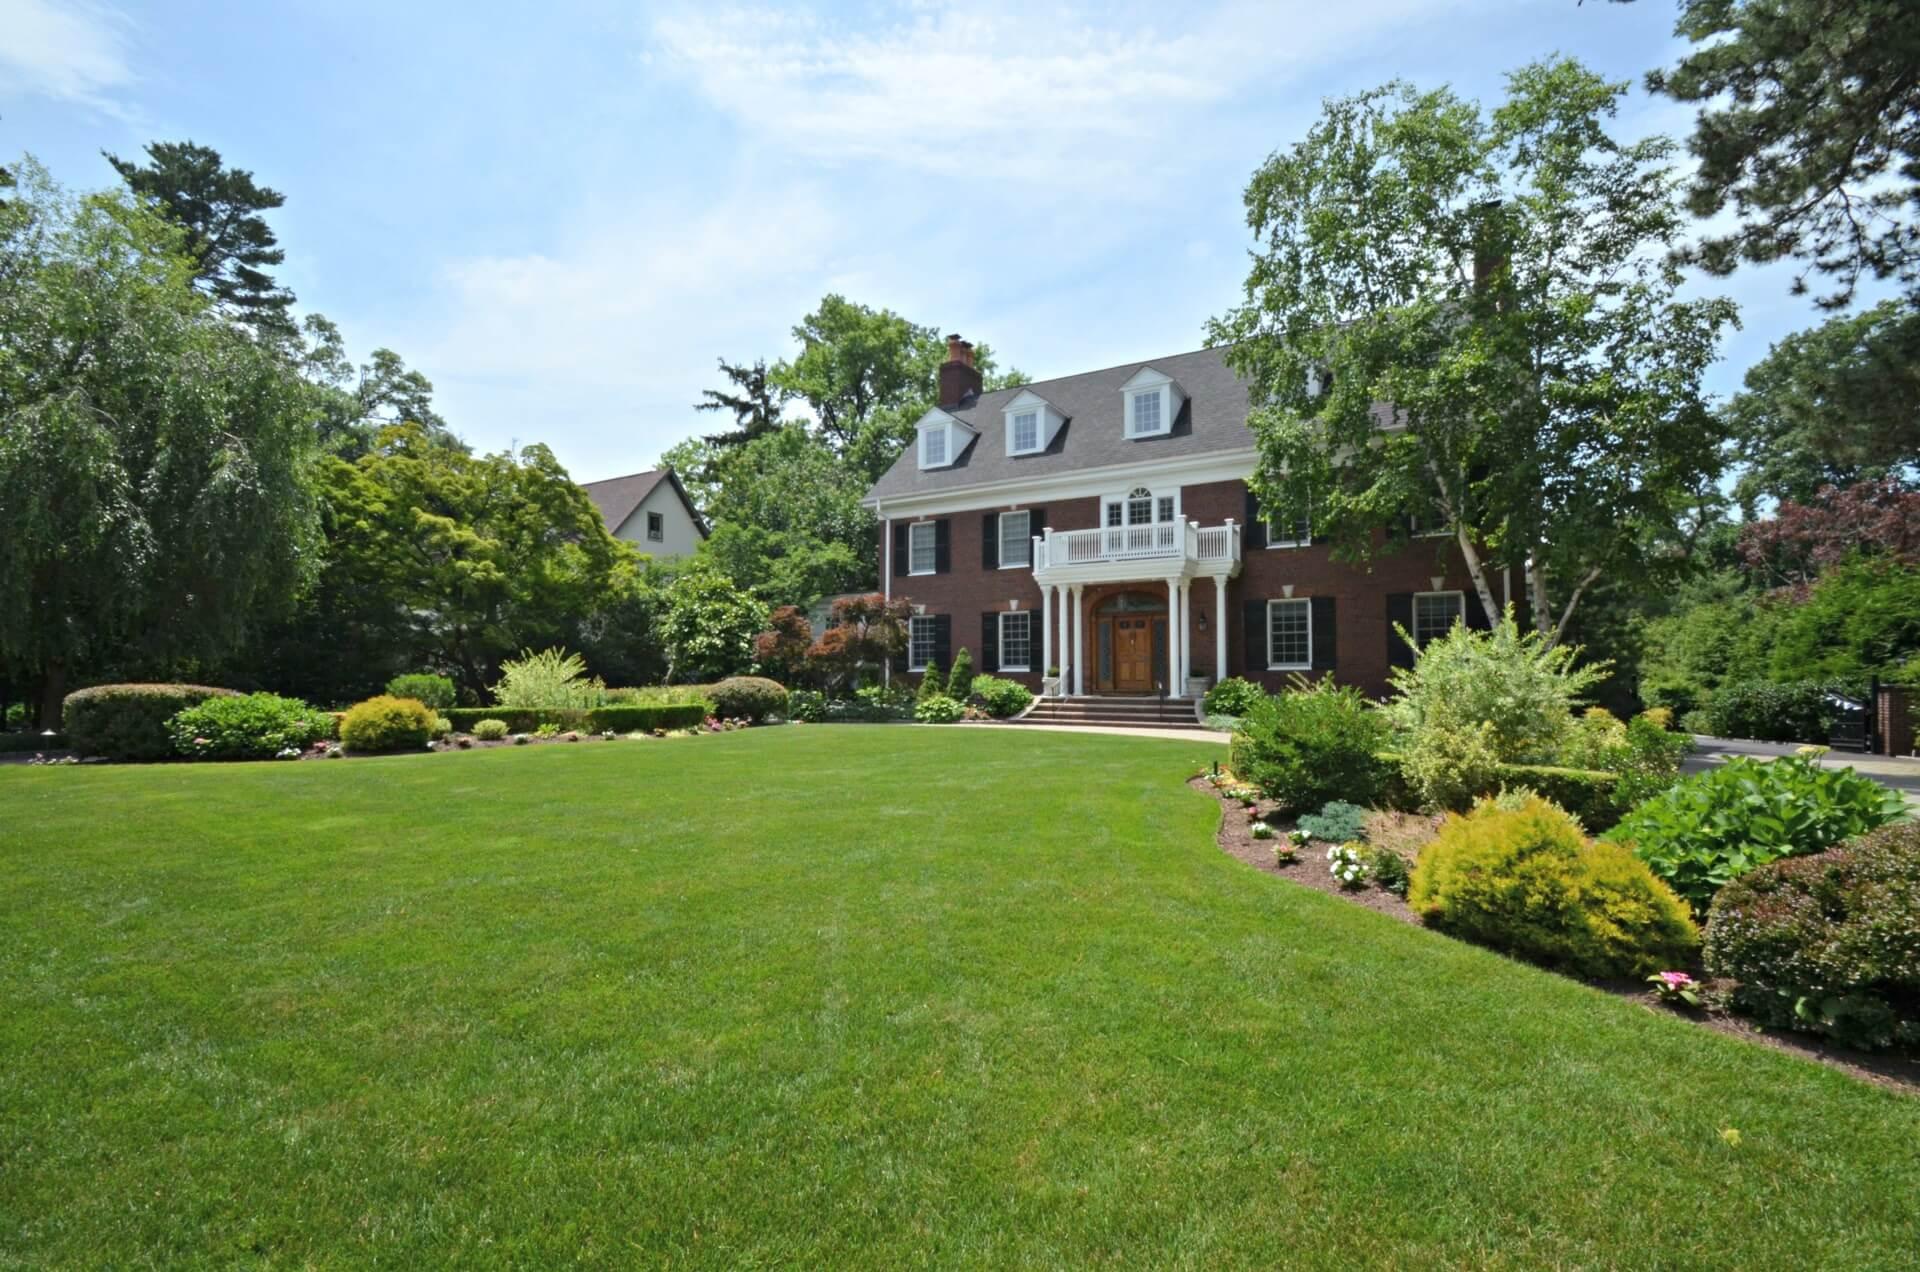 Glen Ridge NJ Georgian style home and landscaping